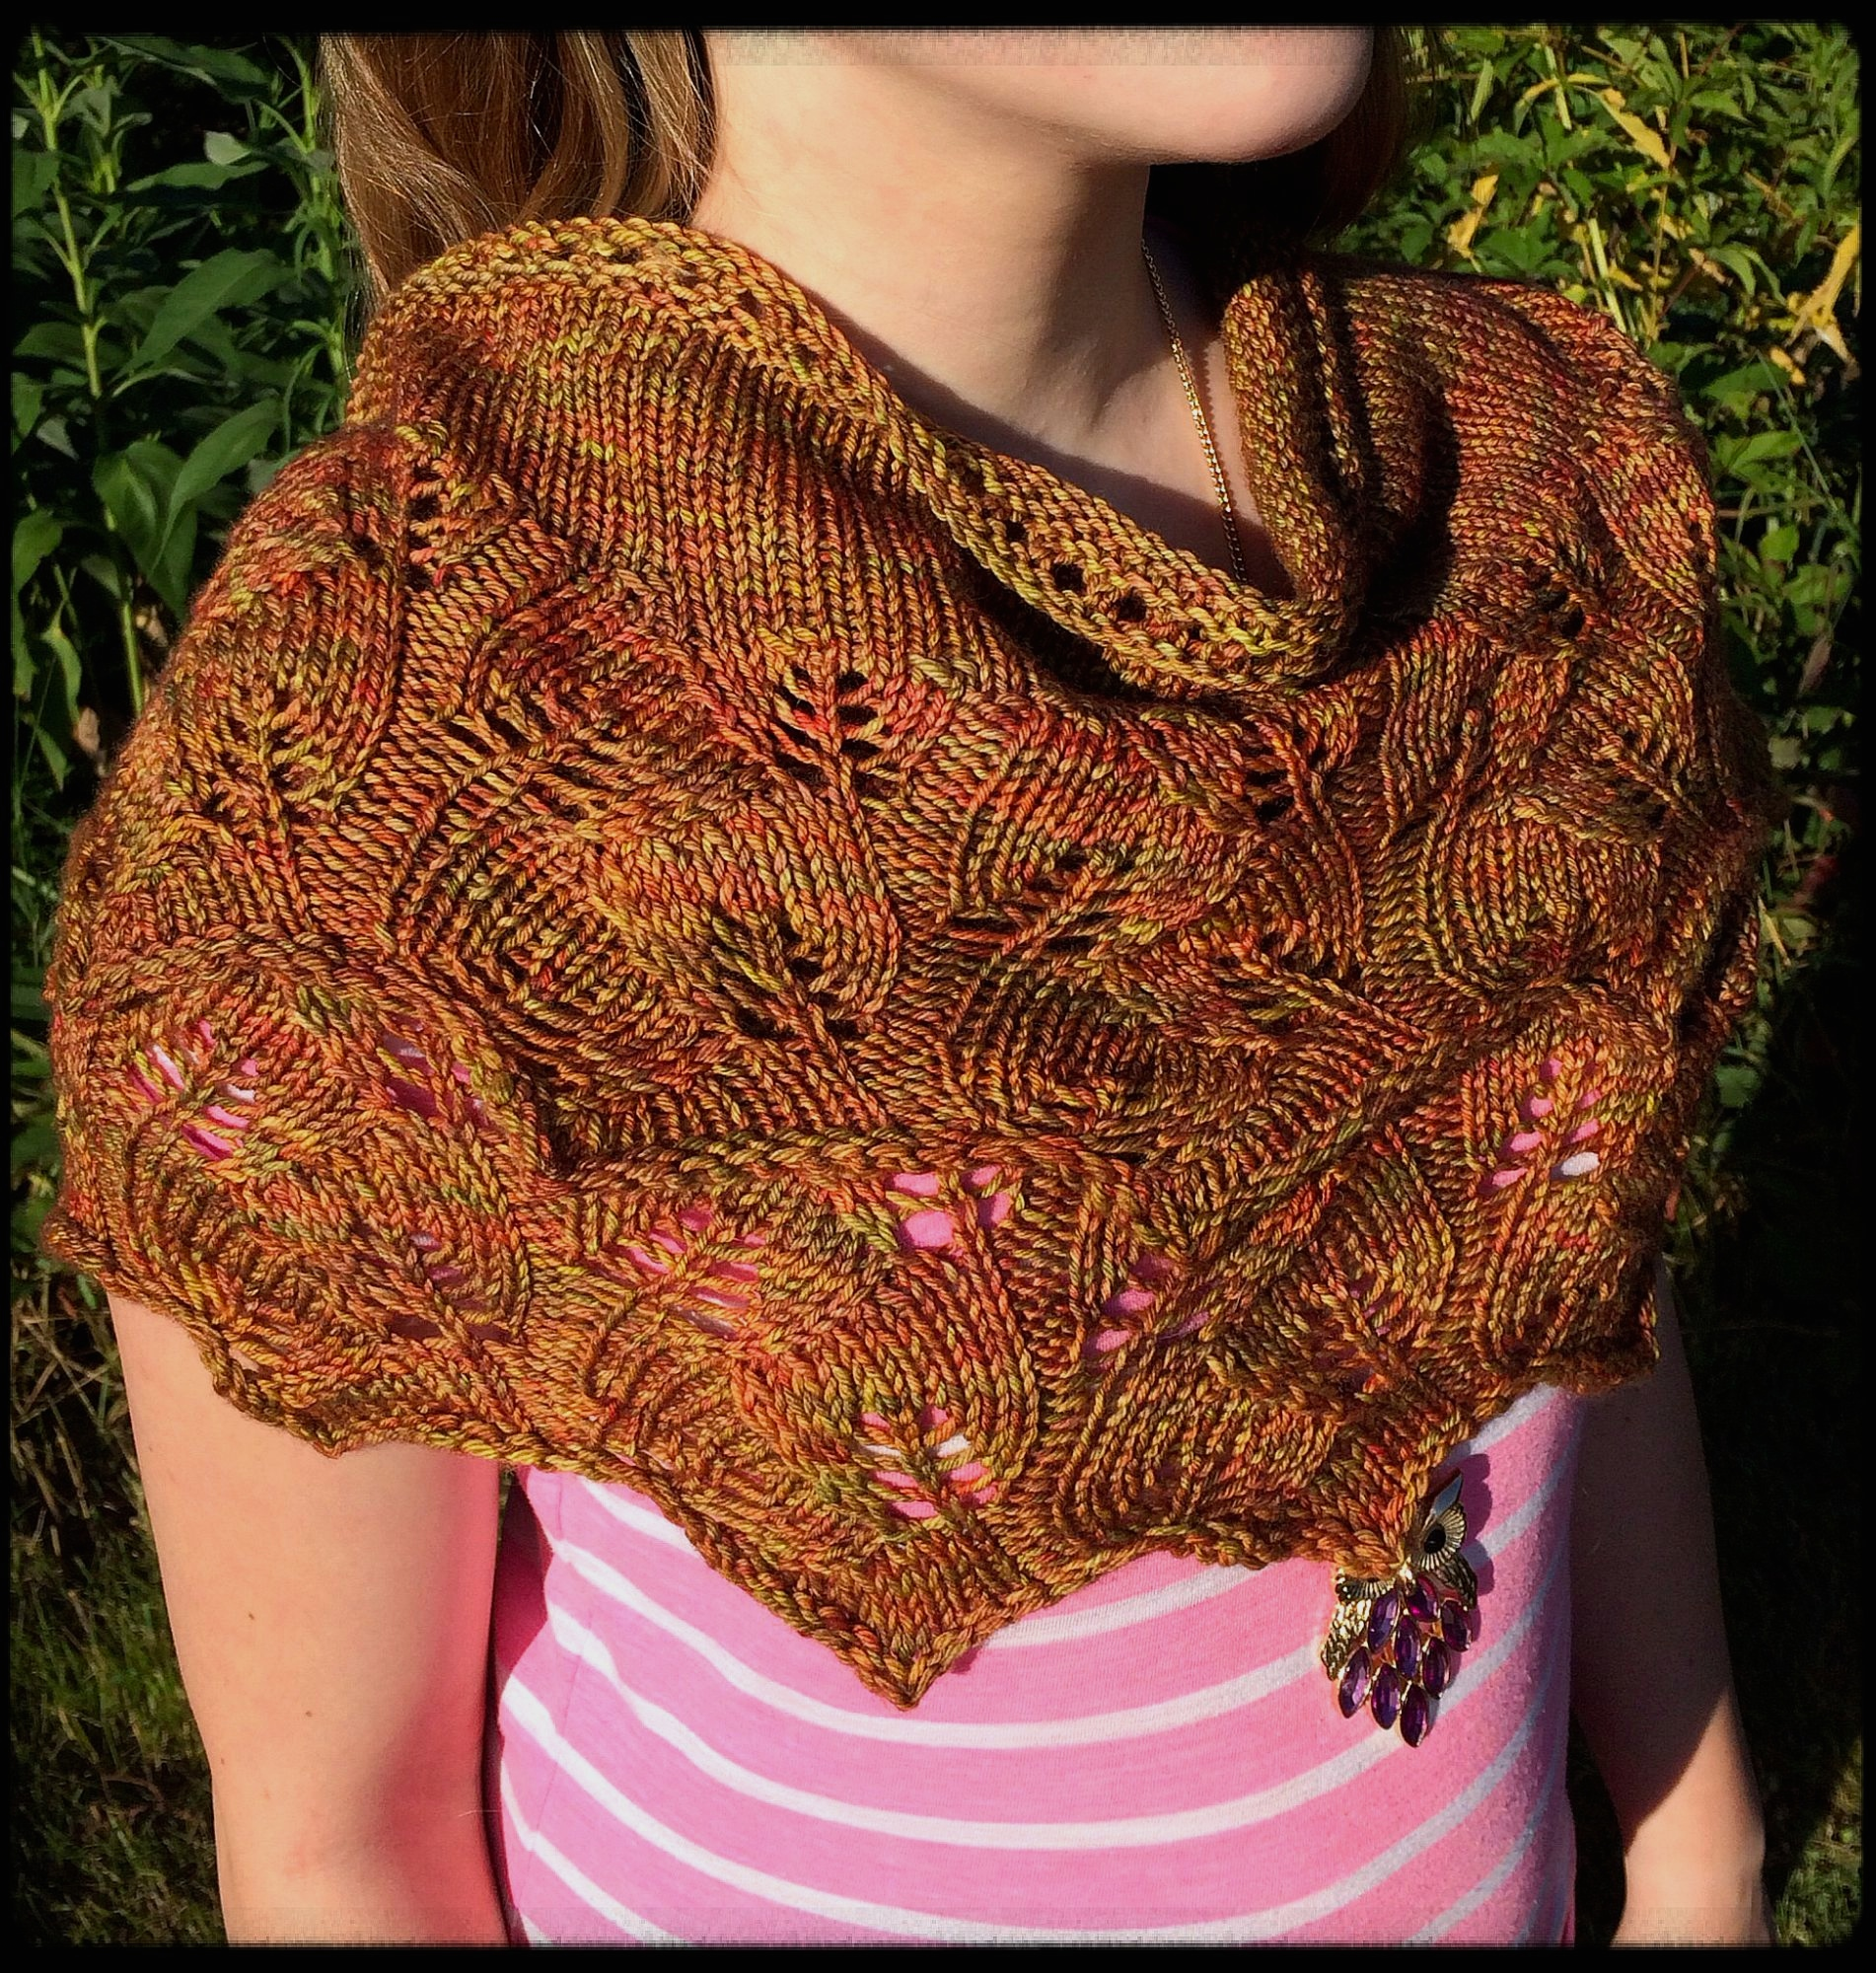 Dreambird Knitting Pattern : Dreambird Progress and a Leafy Shawl knit my zen